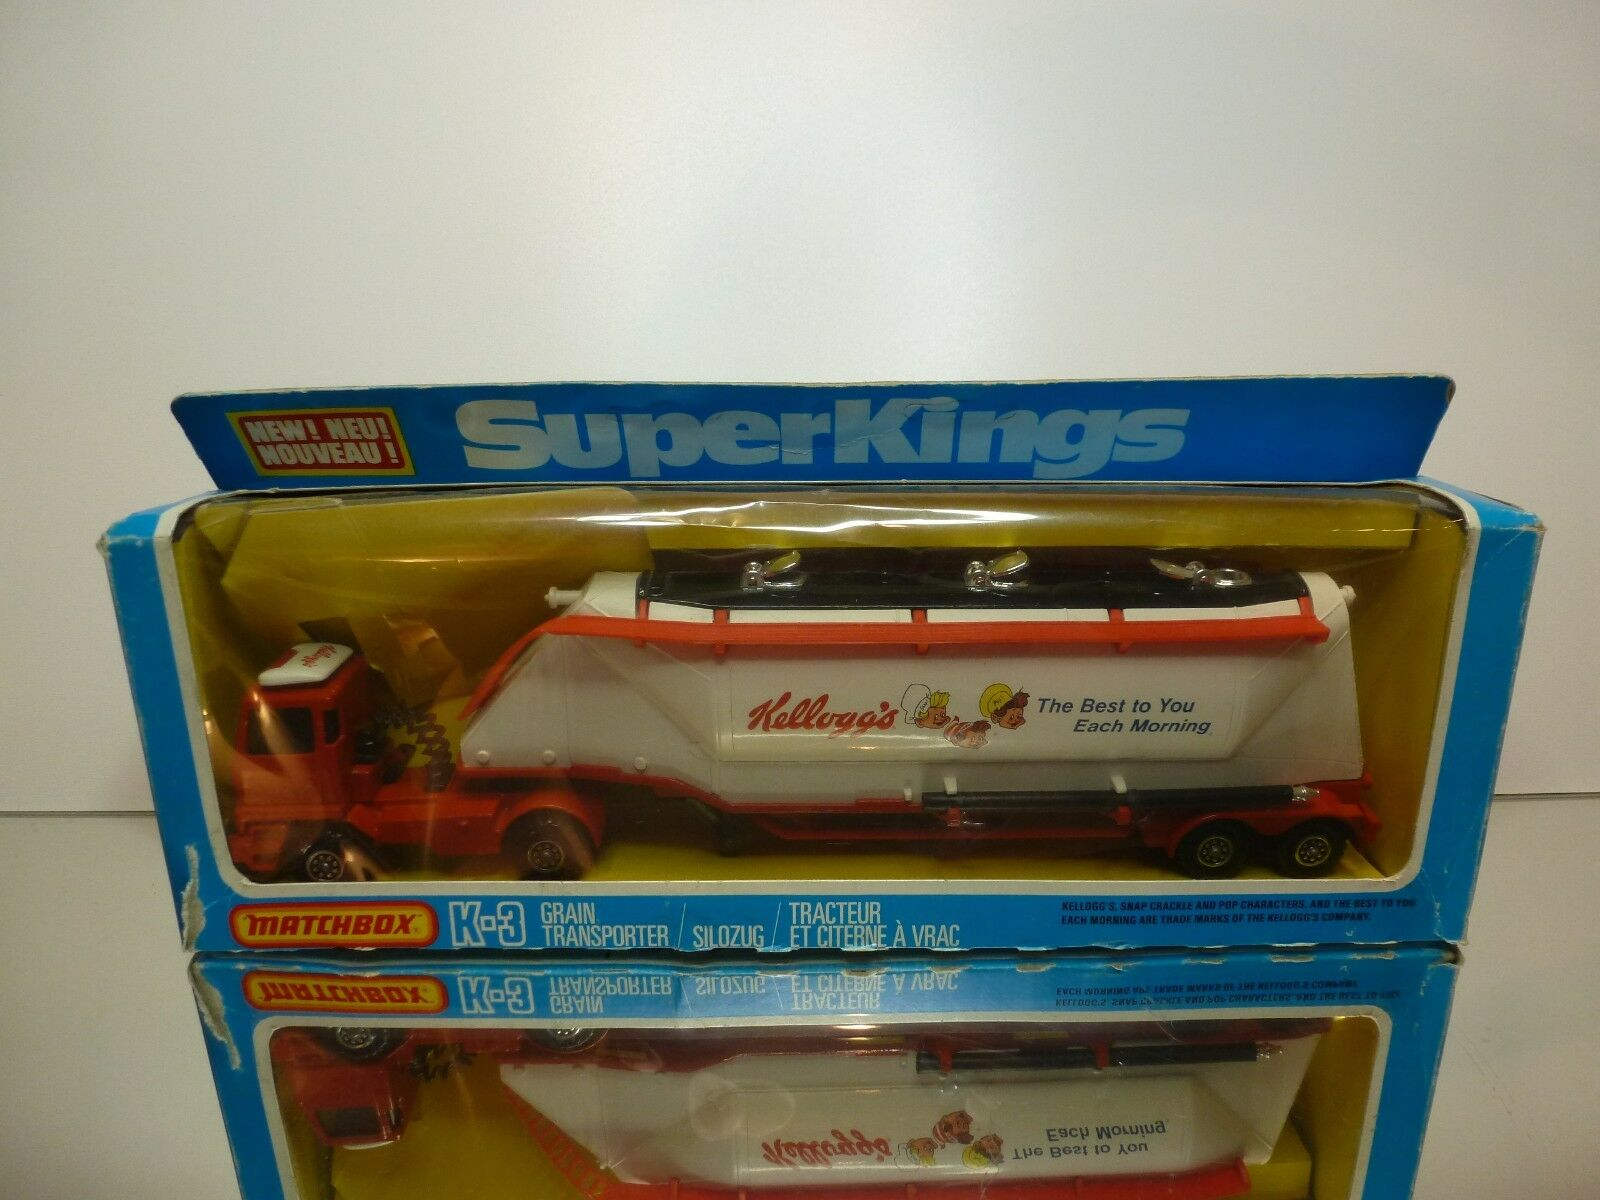 MATCHBOX K-3 BEDFORD GRAIN TRANSPORTER KELLOGG's - WHITE 1 50 - GOOD IN BOX